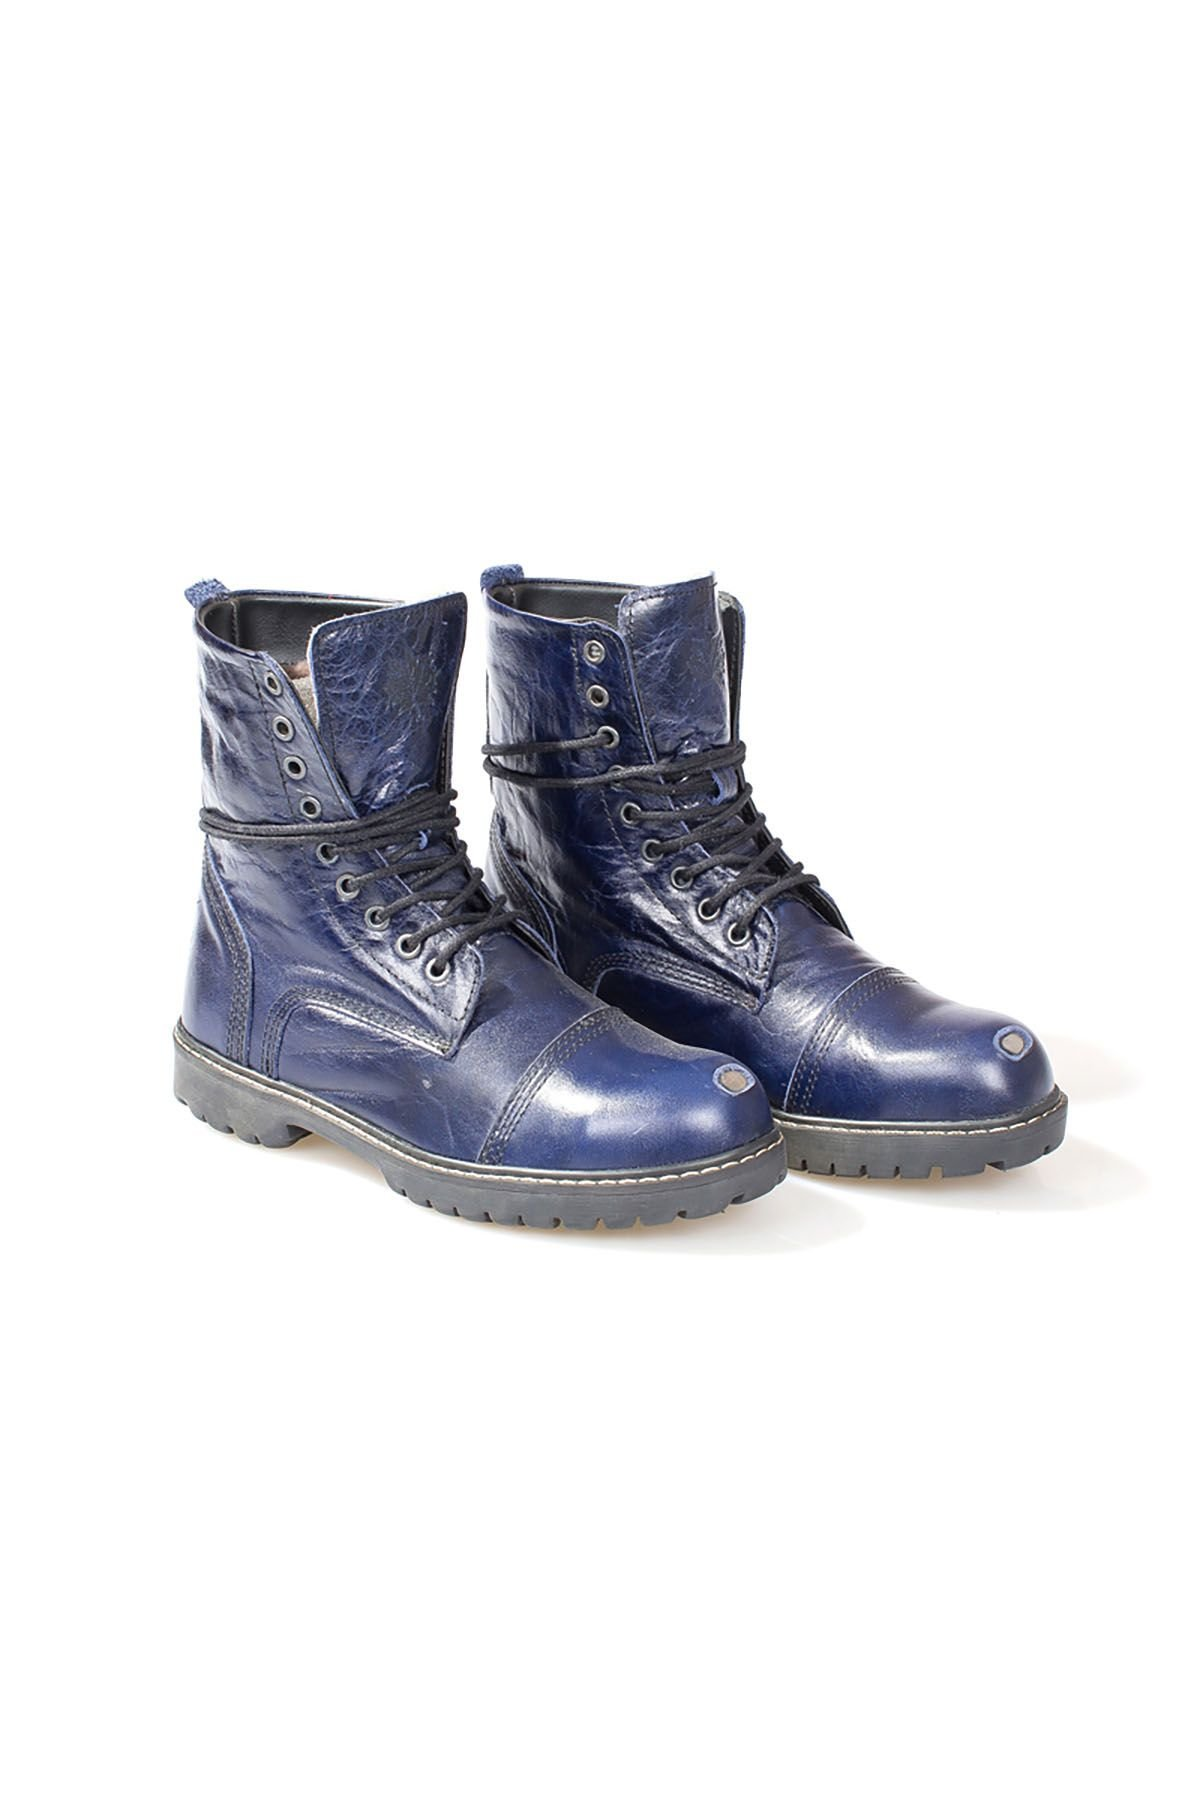 Pegia Vintage Women Boots From Genuine Leather And Fur Navy blue